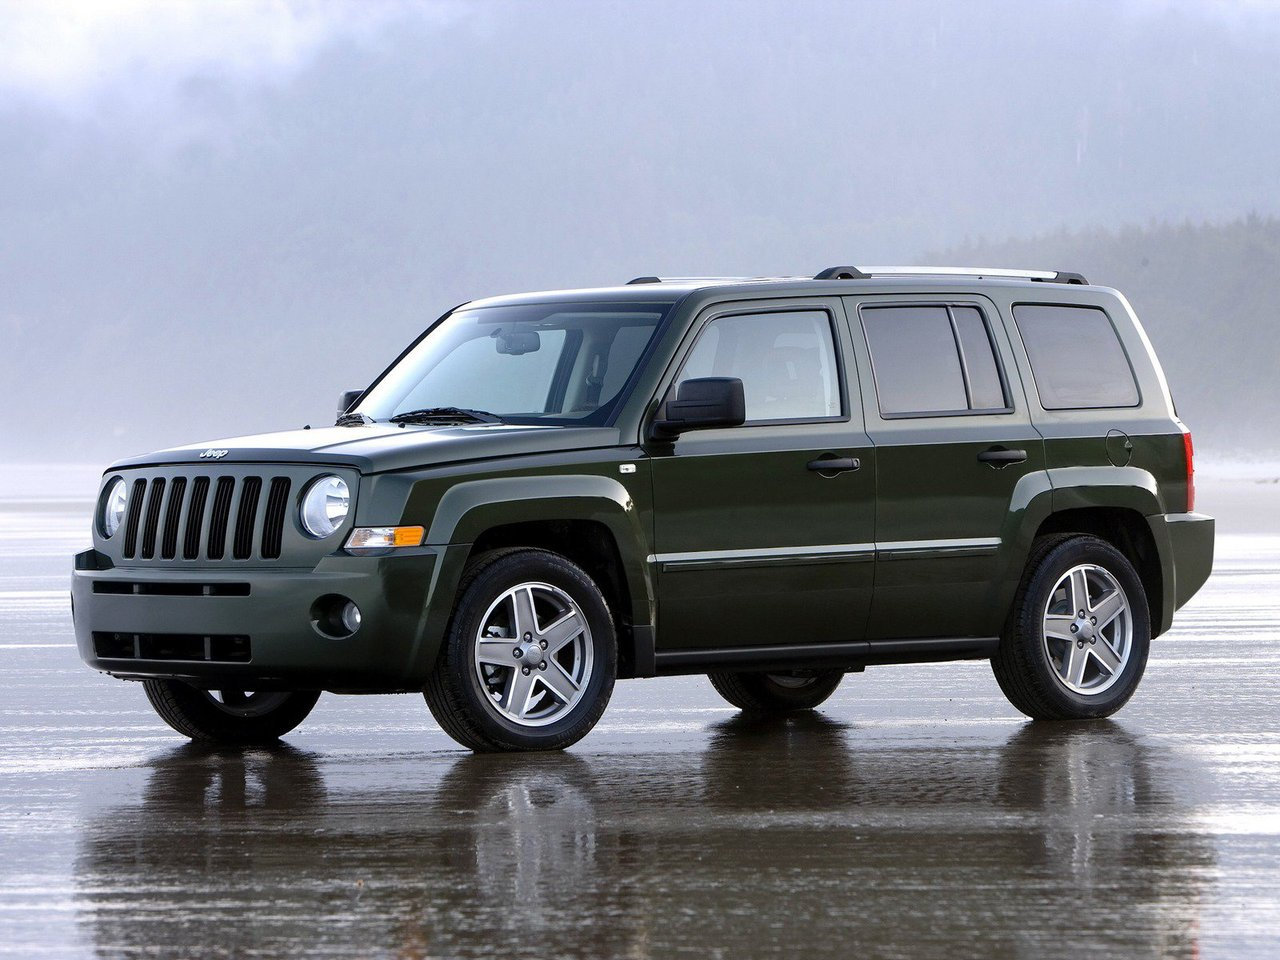 Автомобиль Jeep Liberty (Patriot)